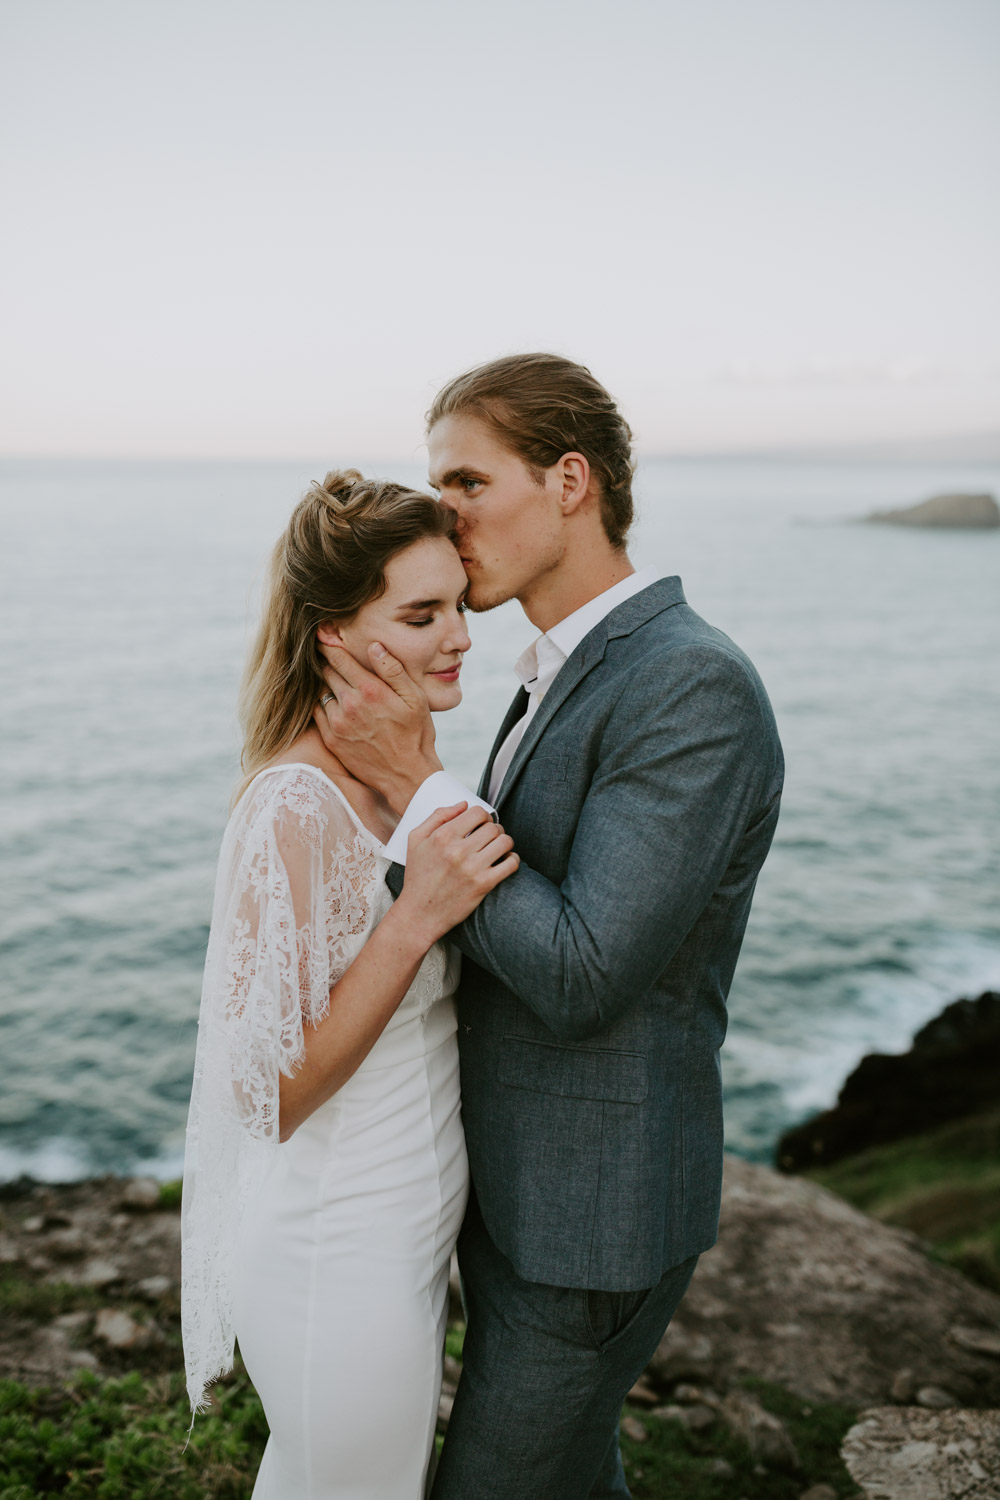 Maui Wedding Photography Reviews: Stephanie Betsill Photography